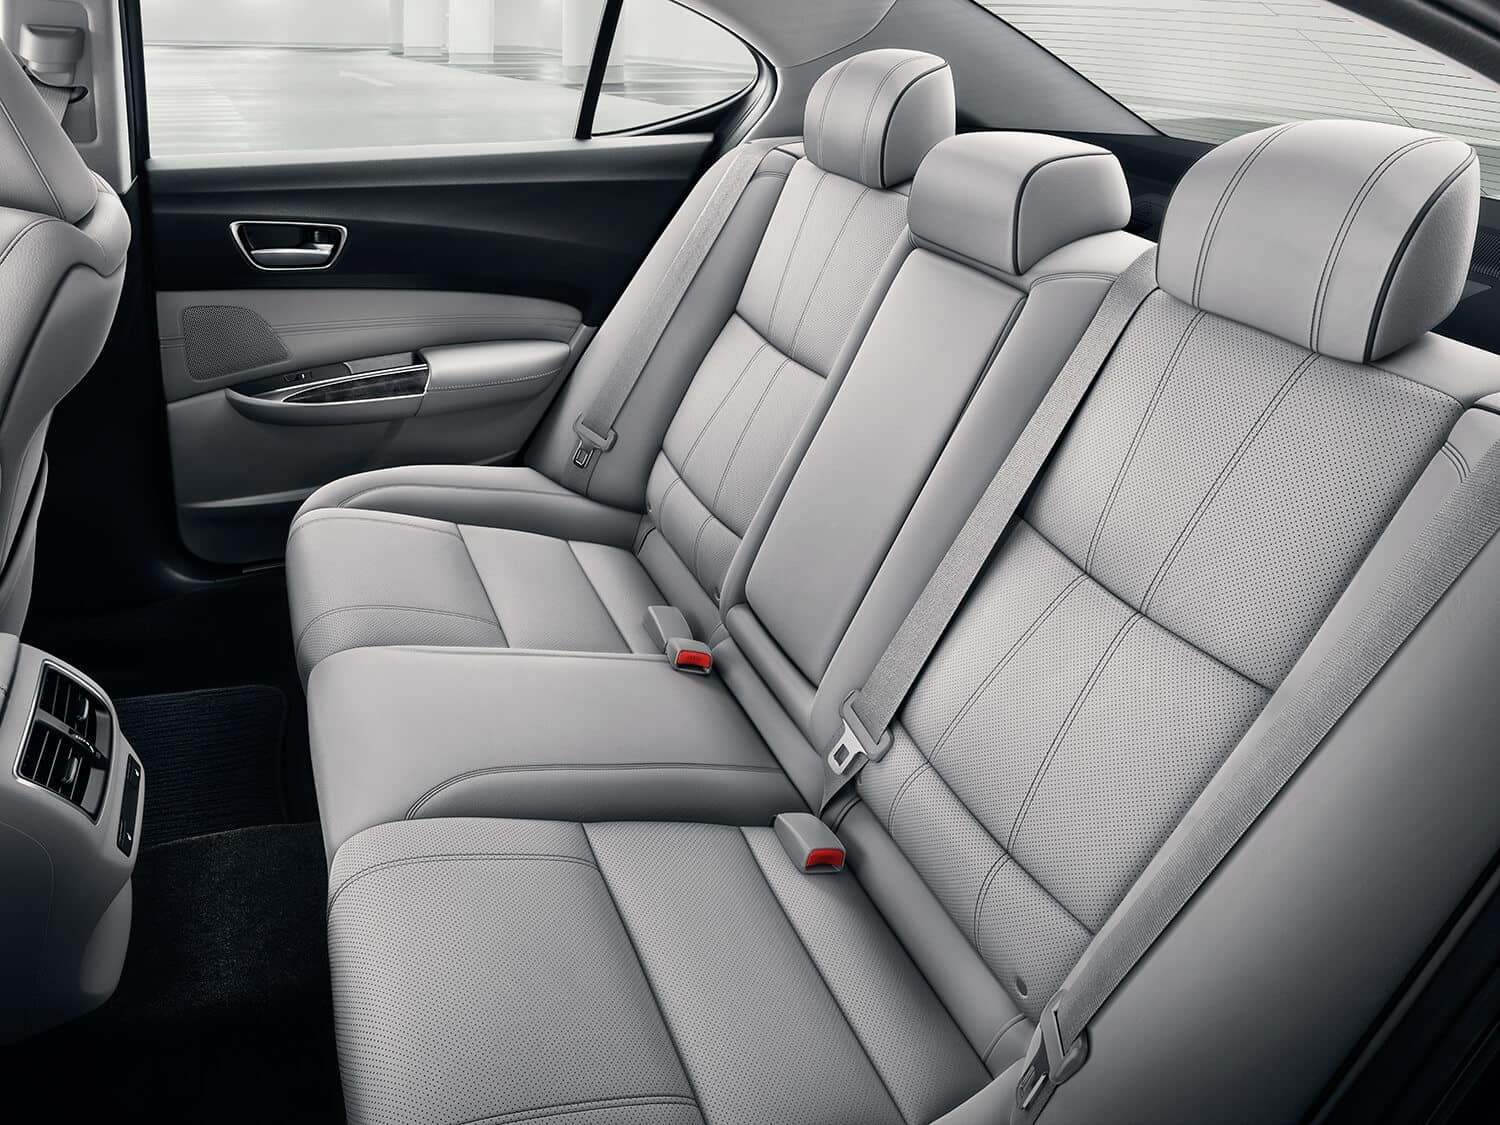 2019 Acura TLX Interior Rear Seating